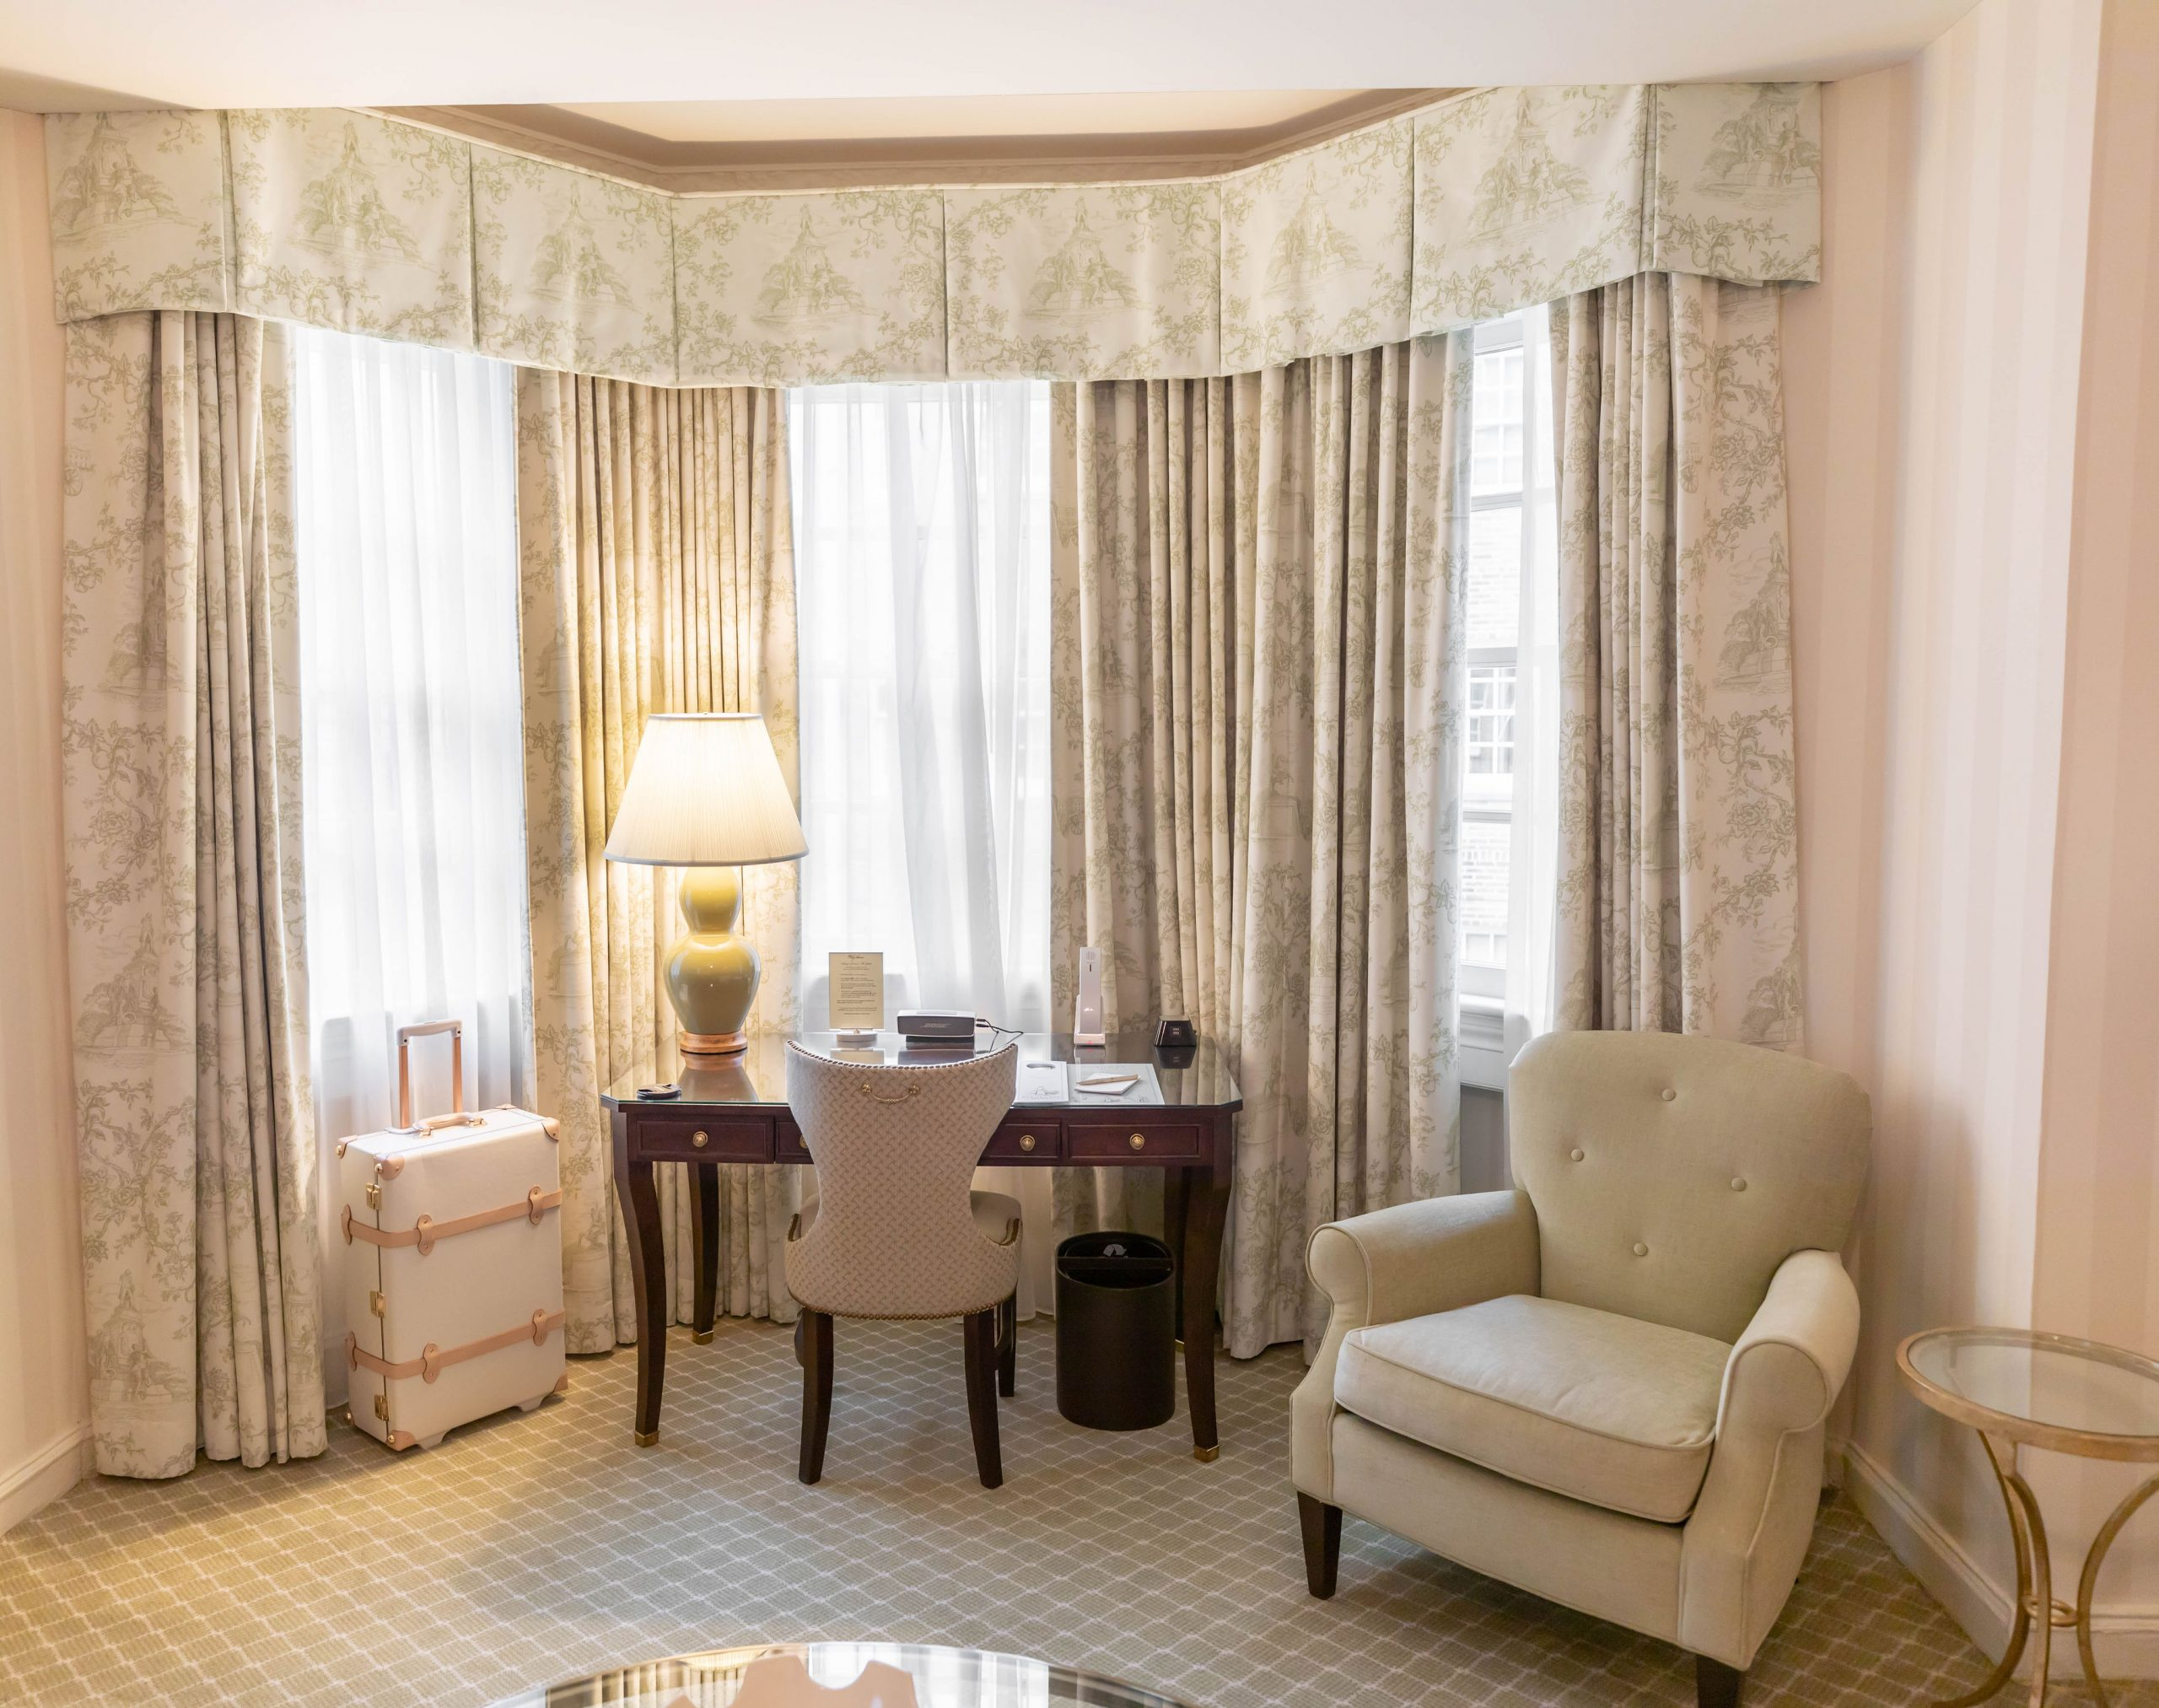 Executive Studio Room at The Hay-Adams 5-Star Luxury Hotel in Washington D.C. Photographed & Written by Luxury Travel & Lifestyle Writer Annie Fairfax